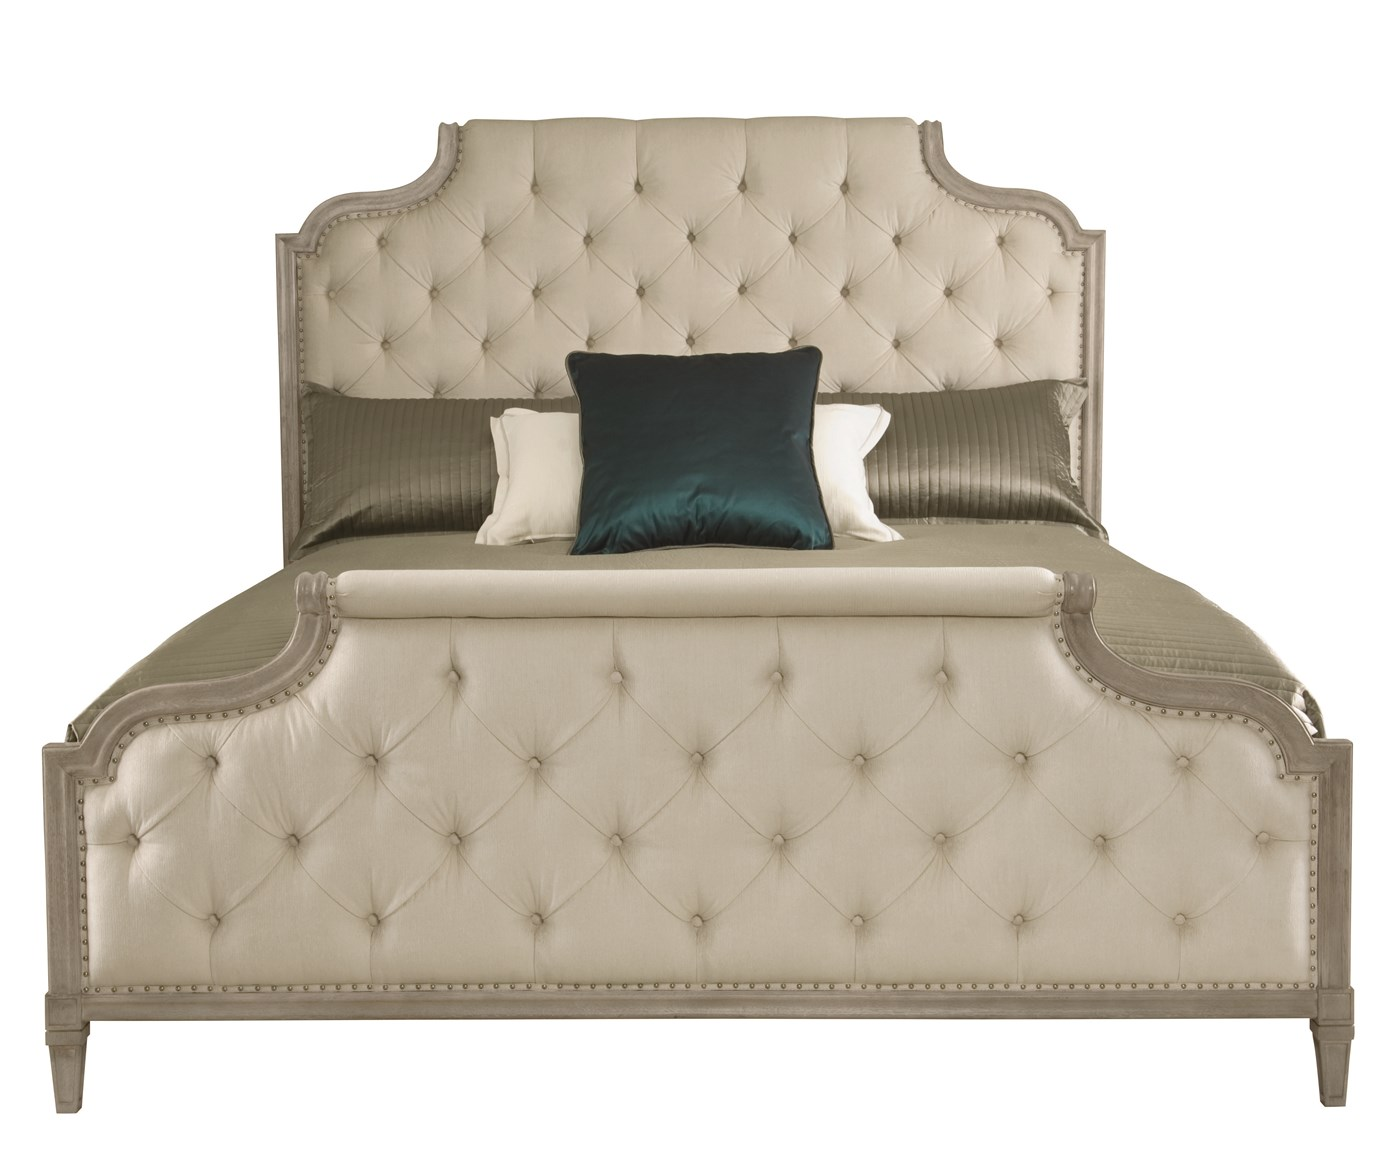 Marquesa Upholstered King Bed Beds Bedroom Robb Stucky